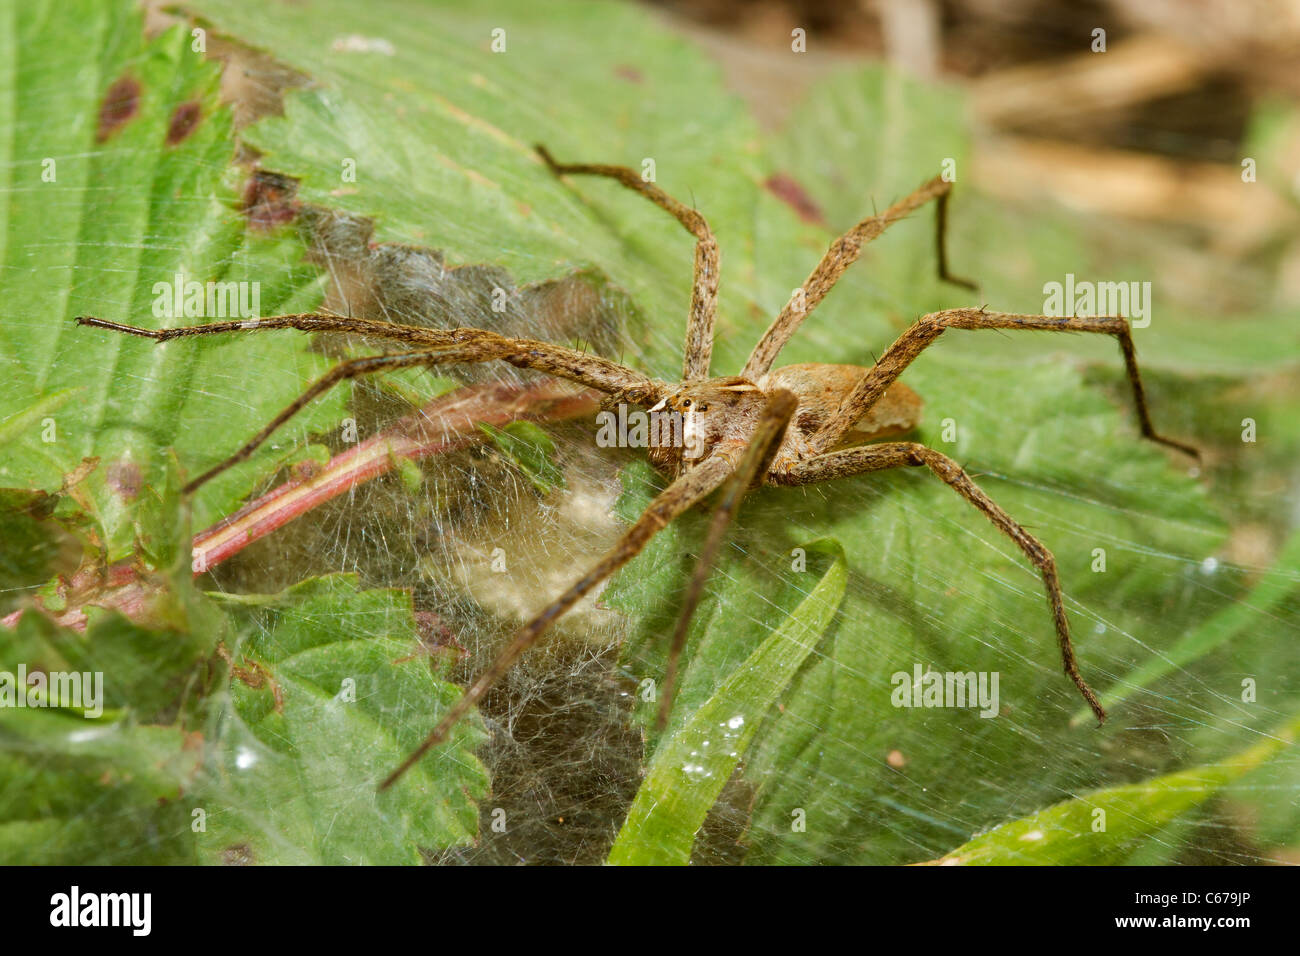 Nursery-web Spider in Devon - Stock Image